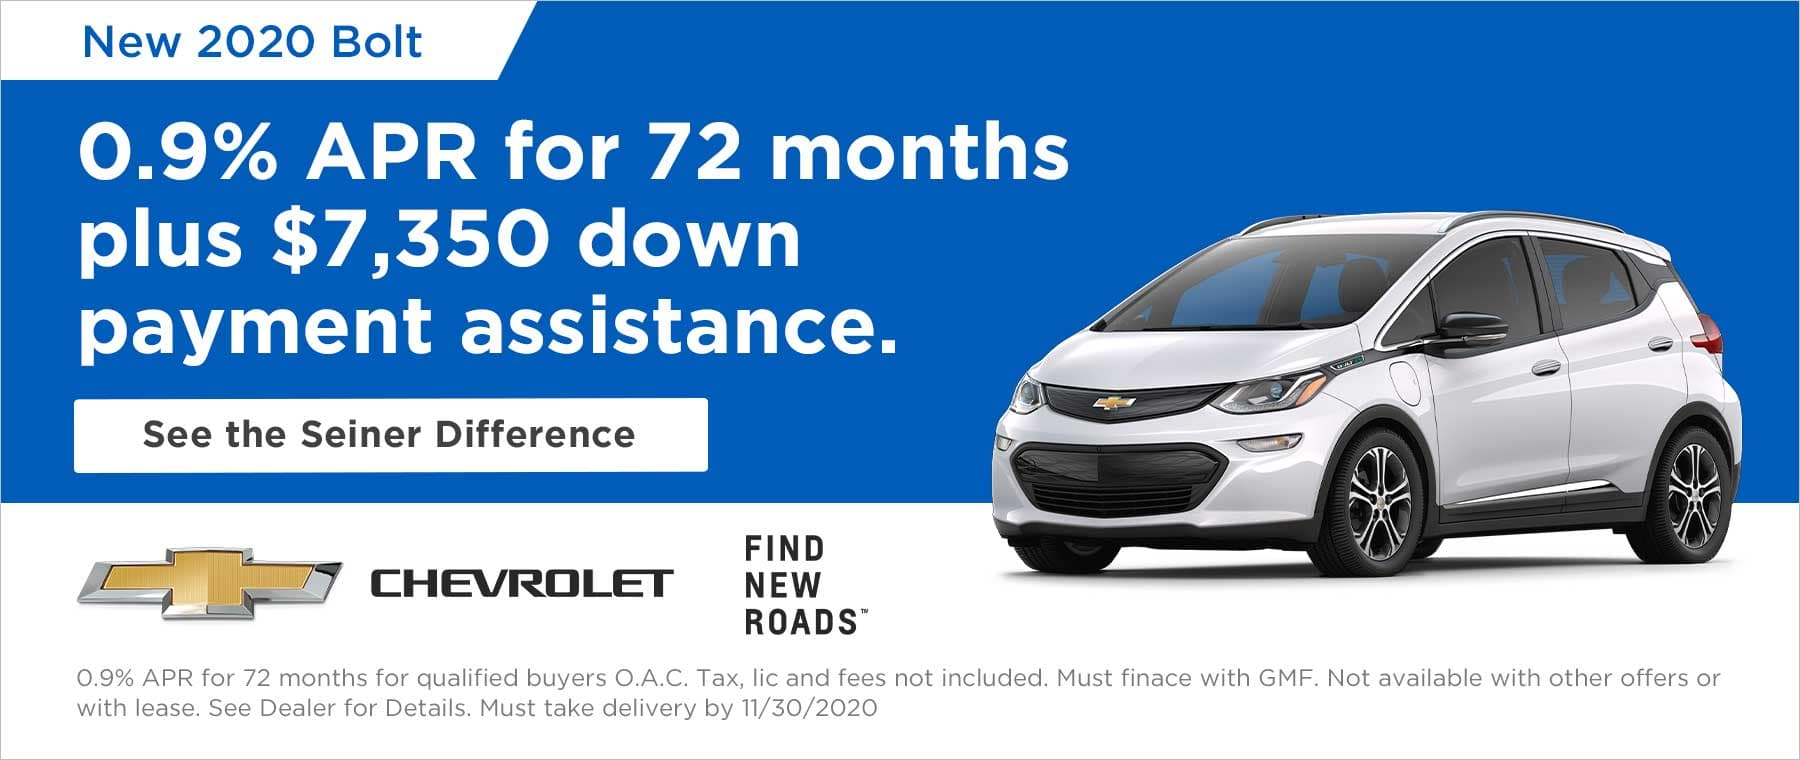 Bolt 0.9% APR and $7,350 down payment assistance